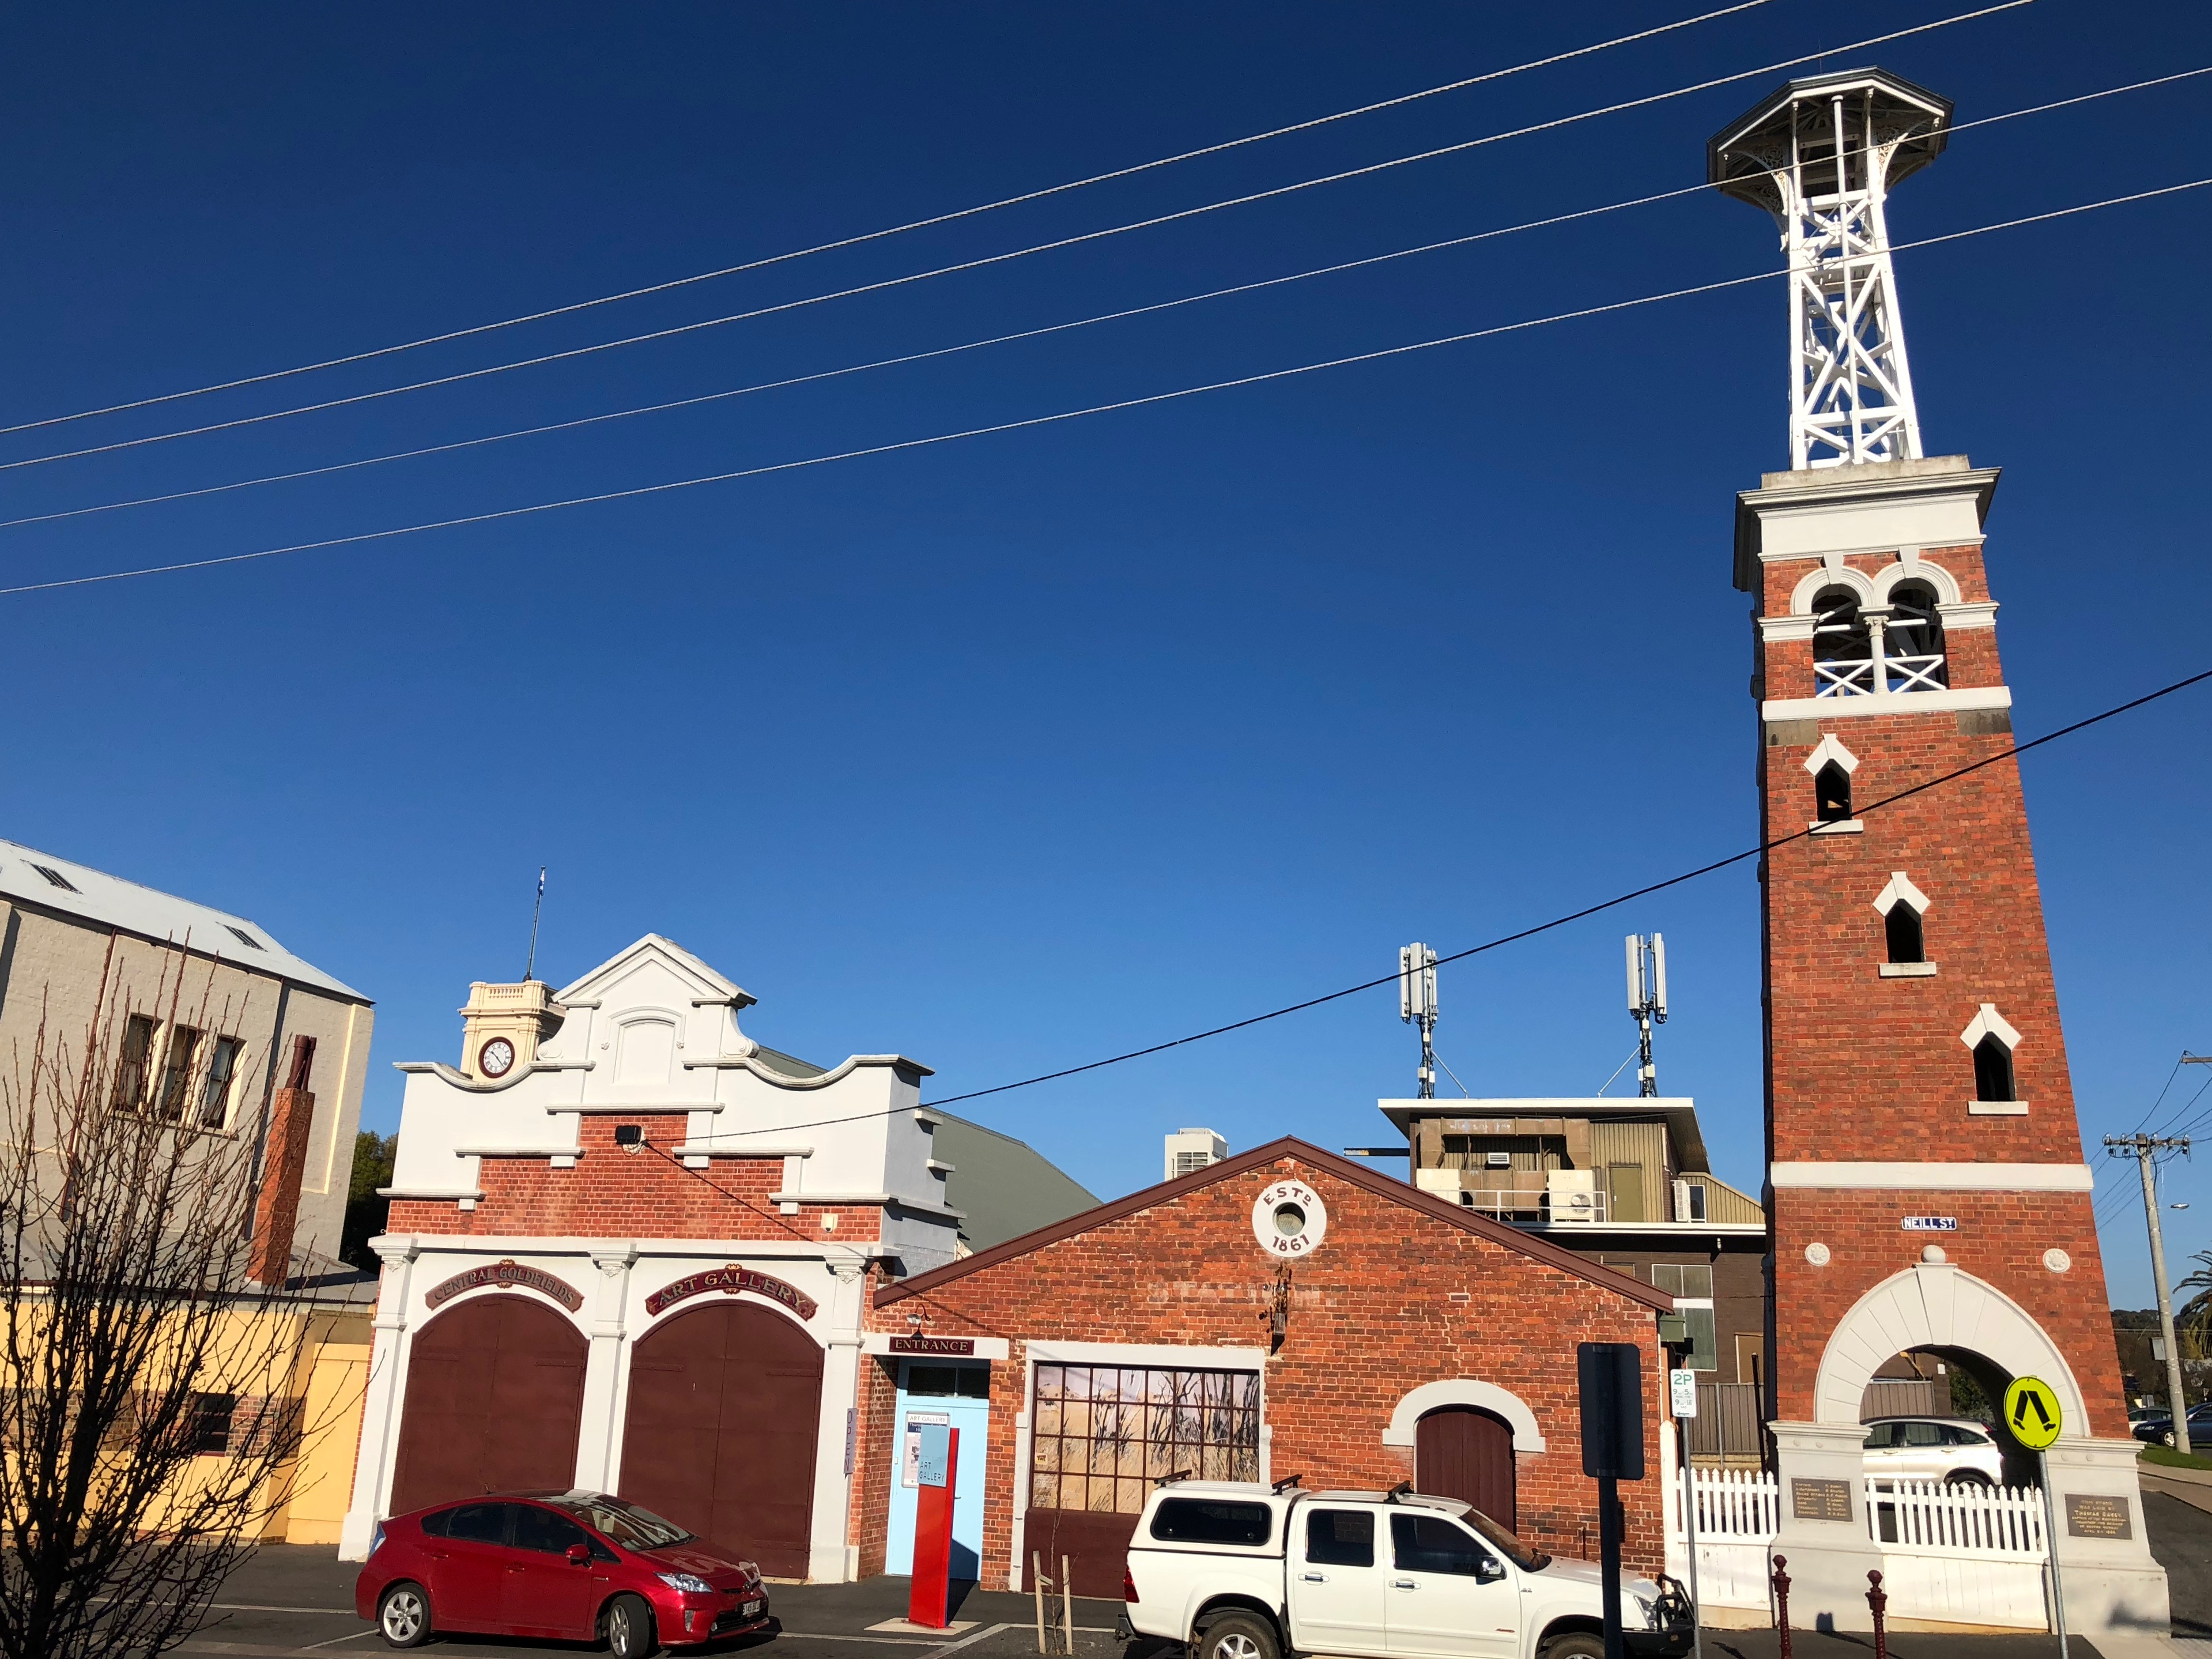 Old Fire Station complex, Maryborough